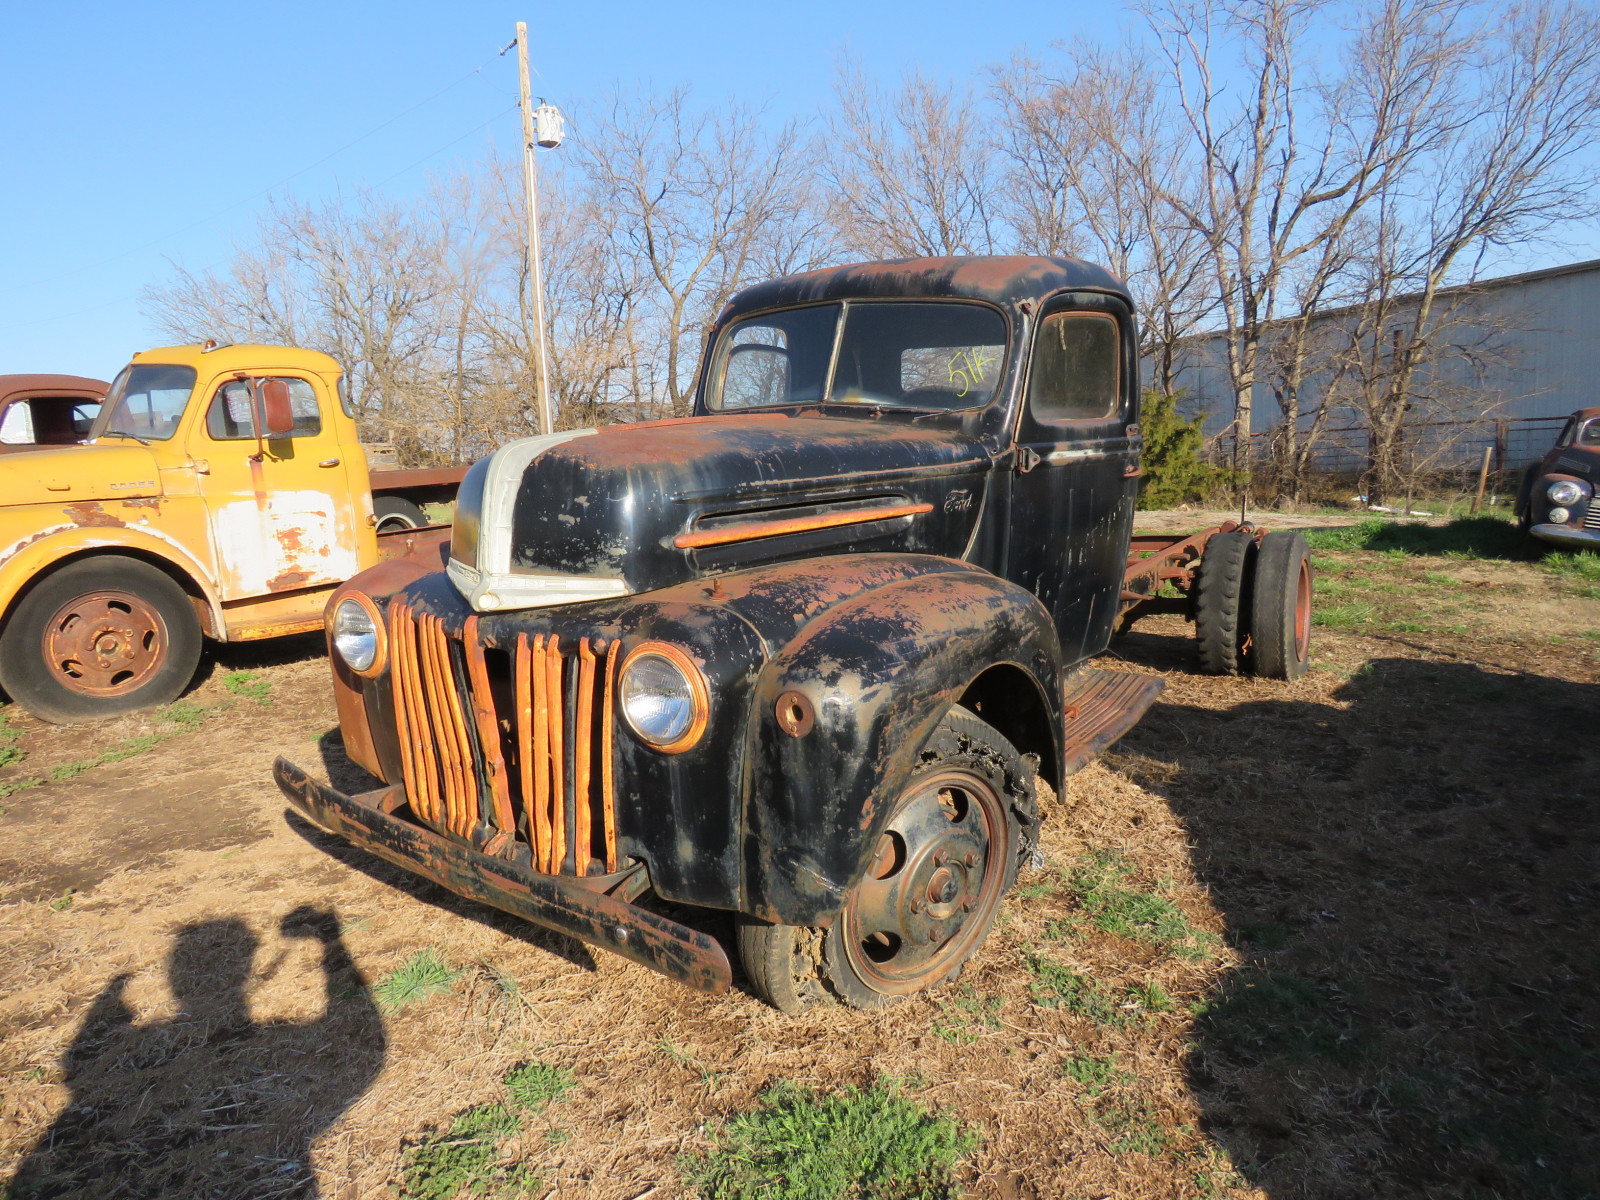 1946 Ford Truck - Image 1